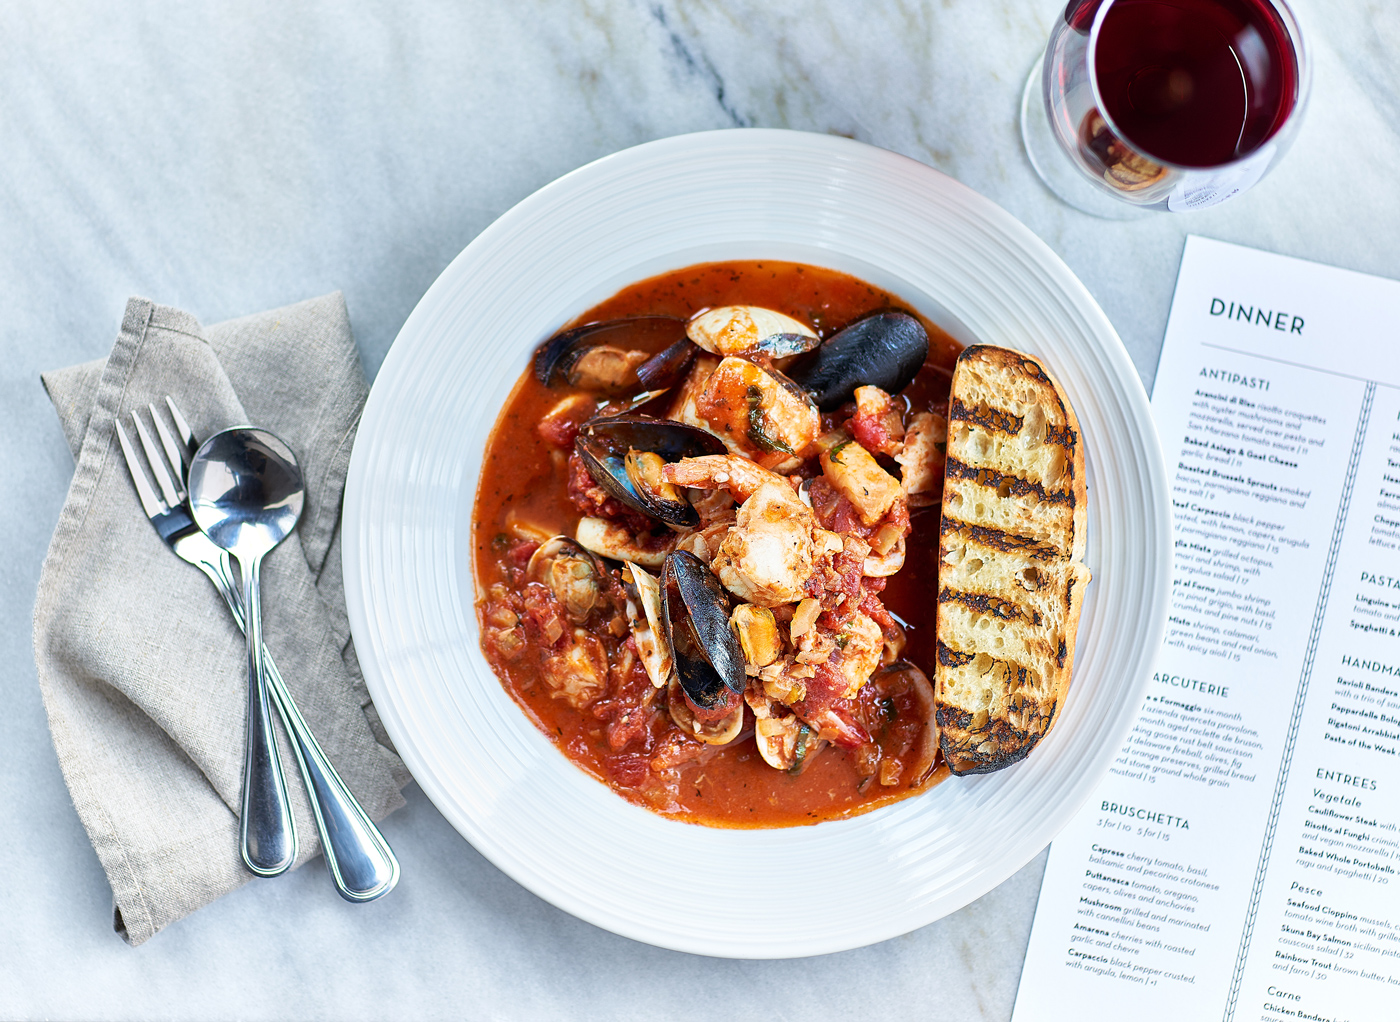 Terrace Room Photo of Seafood Cioppino